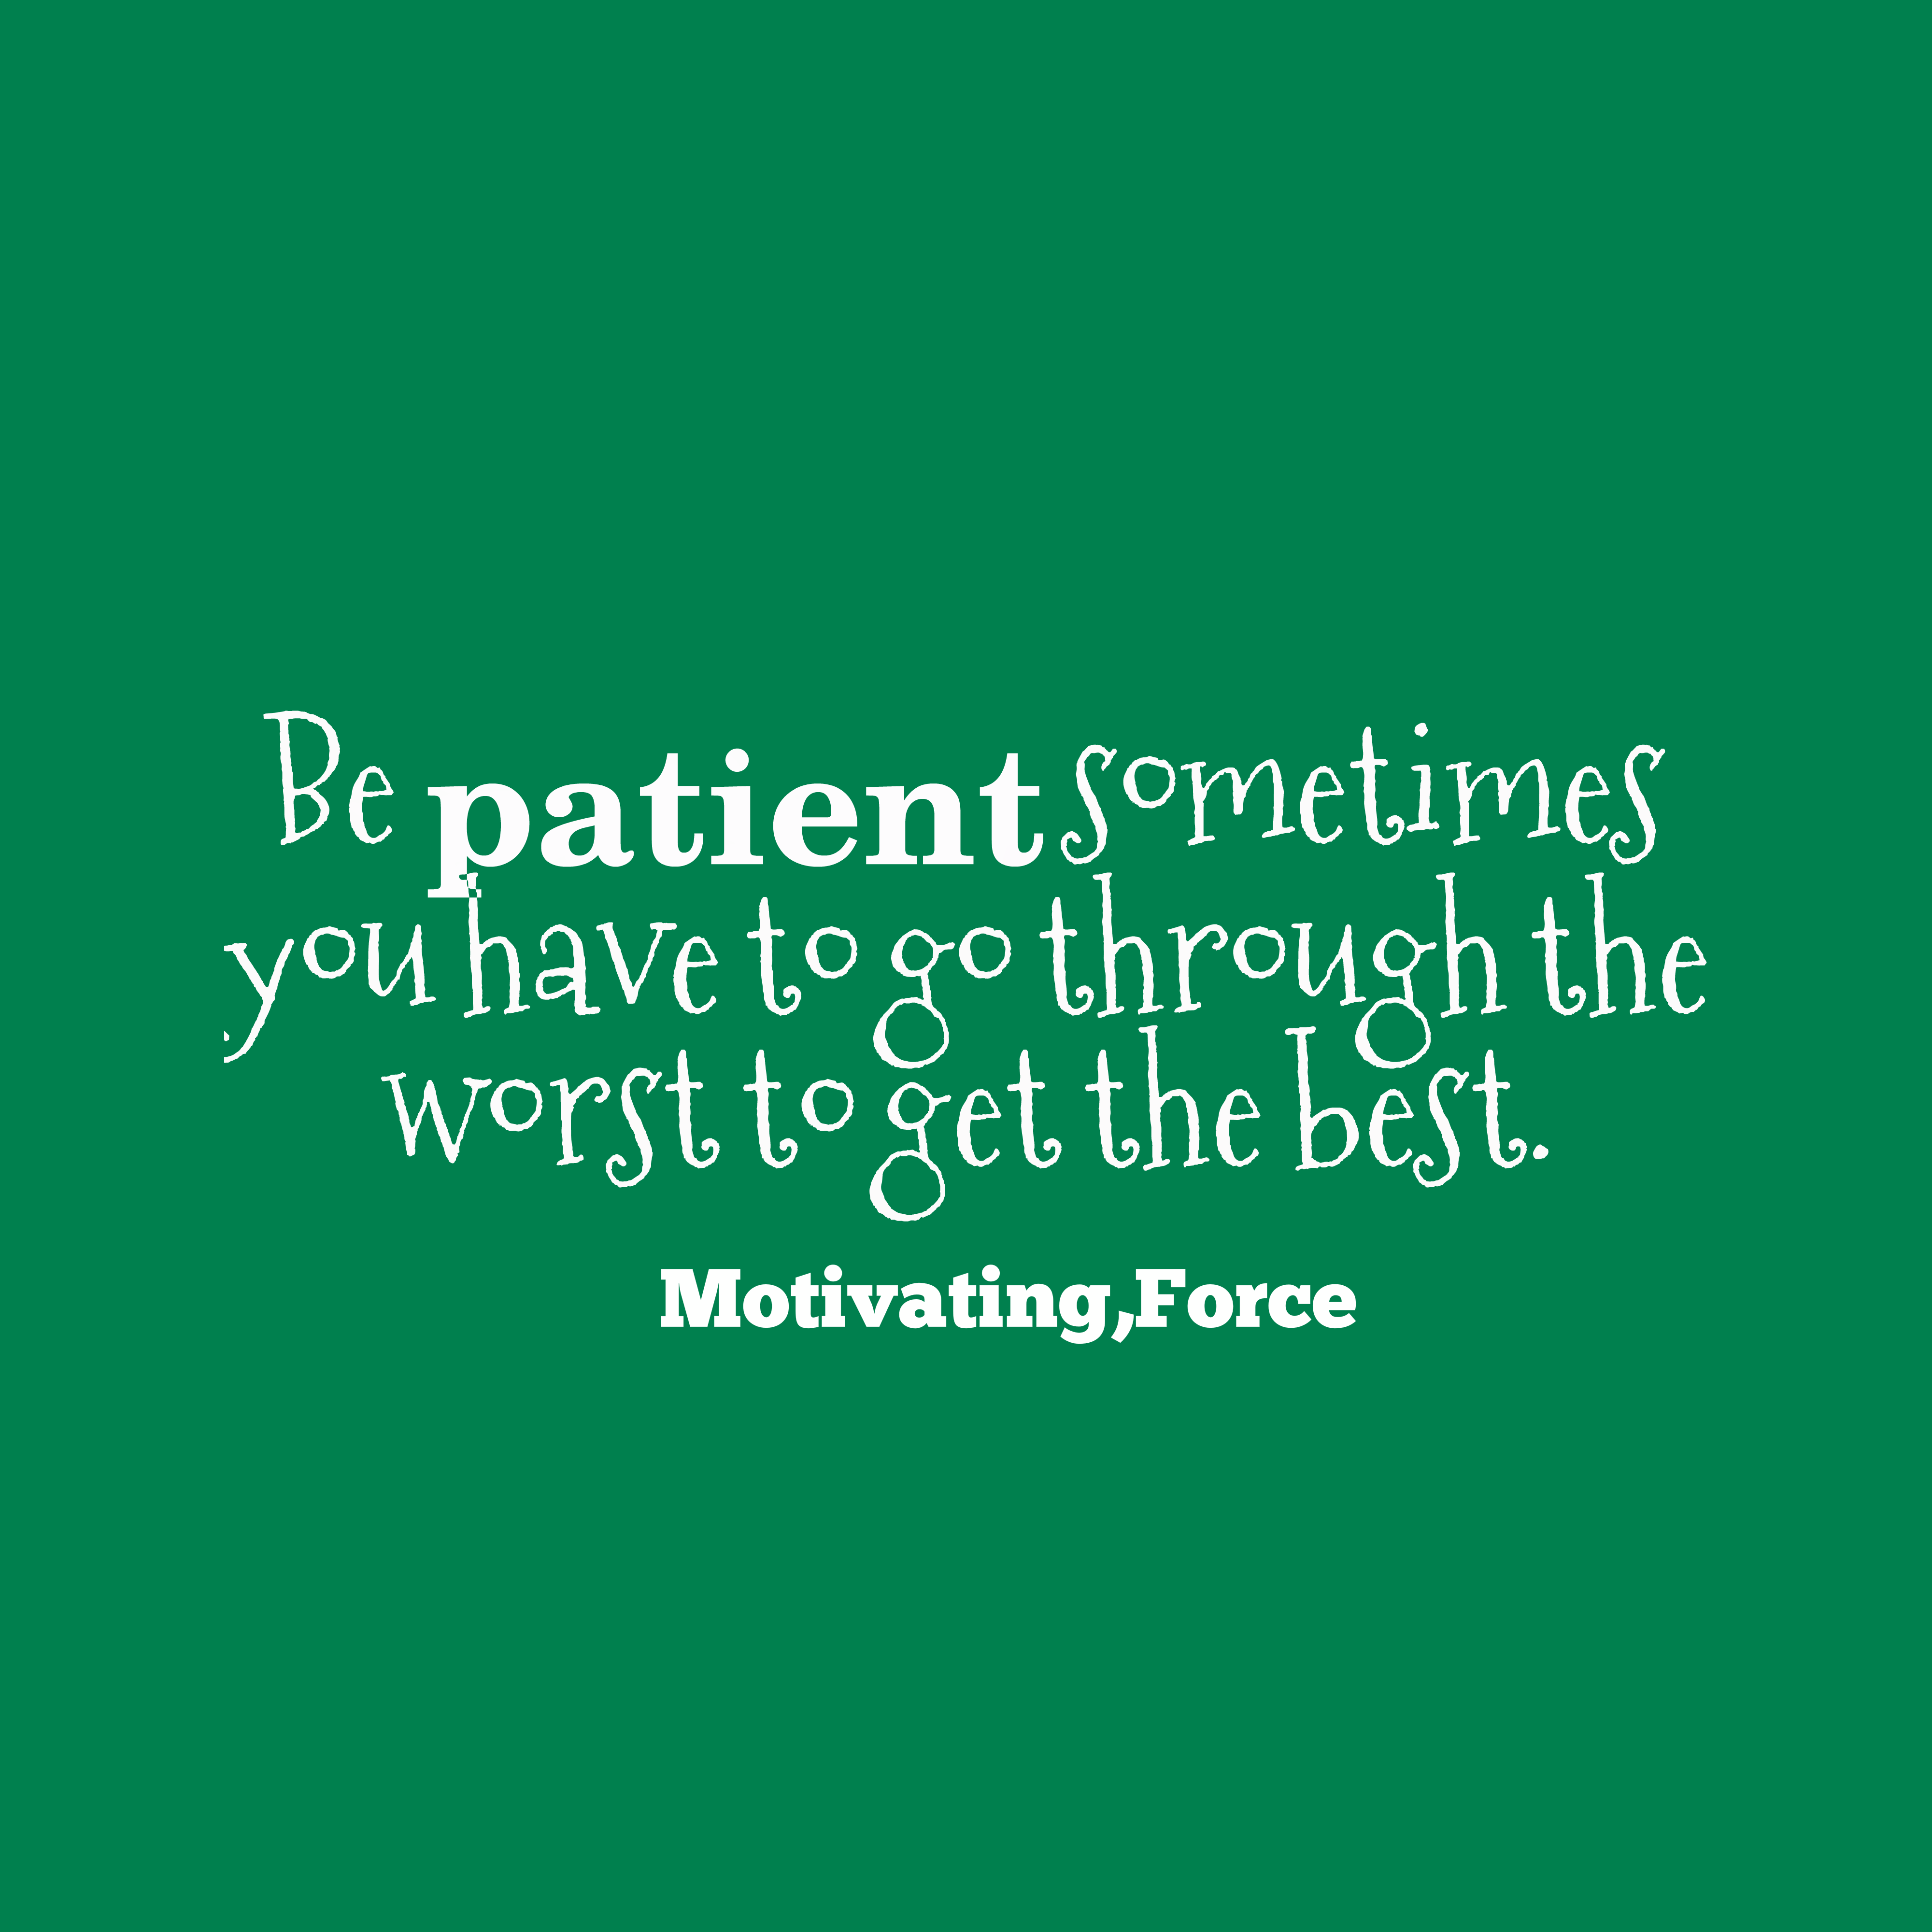 Quotes image of Be patient sometimes you have to go through the worst to get the best.